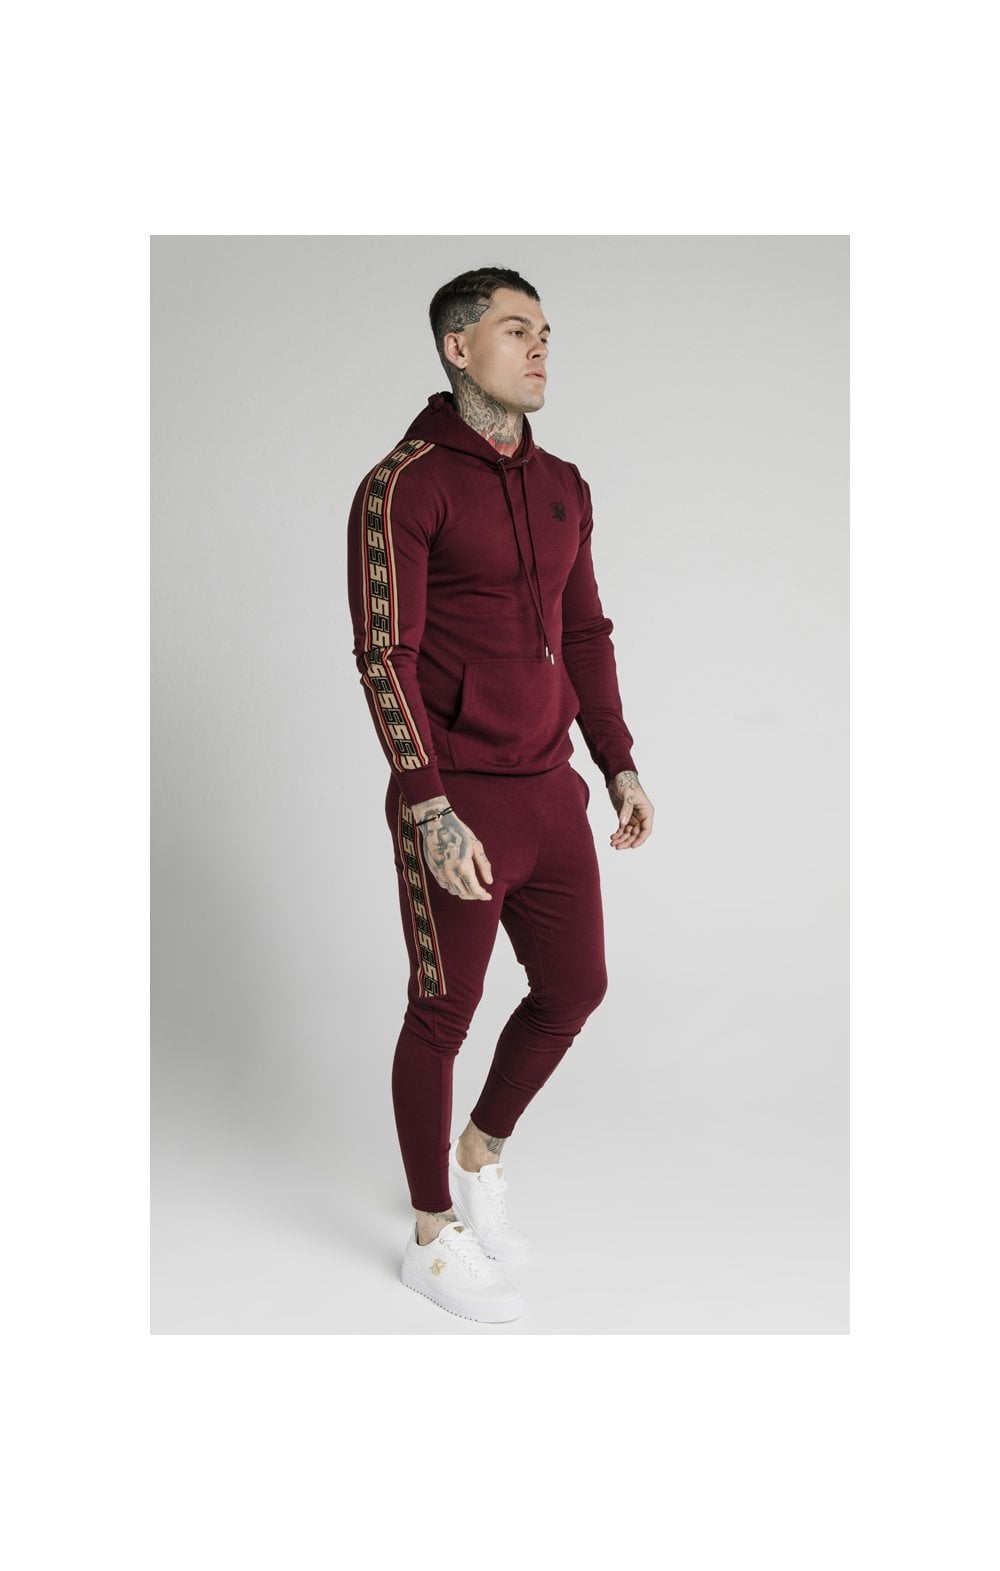 Load image into Gallery viewer, SikSilk Jacquard Retro Overhead Hoodie - Burgundy (4)